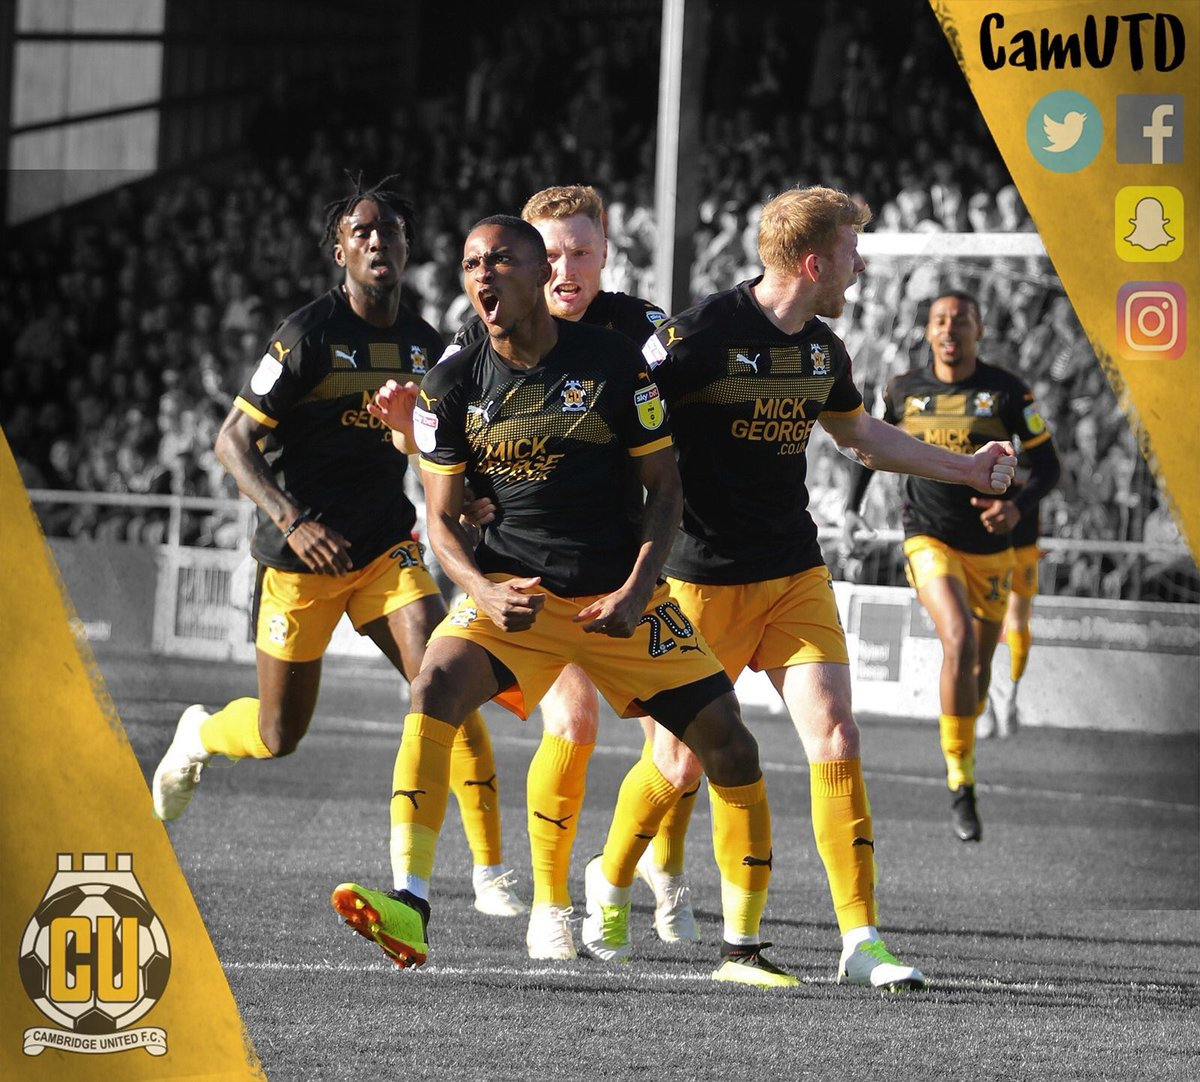 Cambridge United FC's photo on MATCH DAY